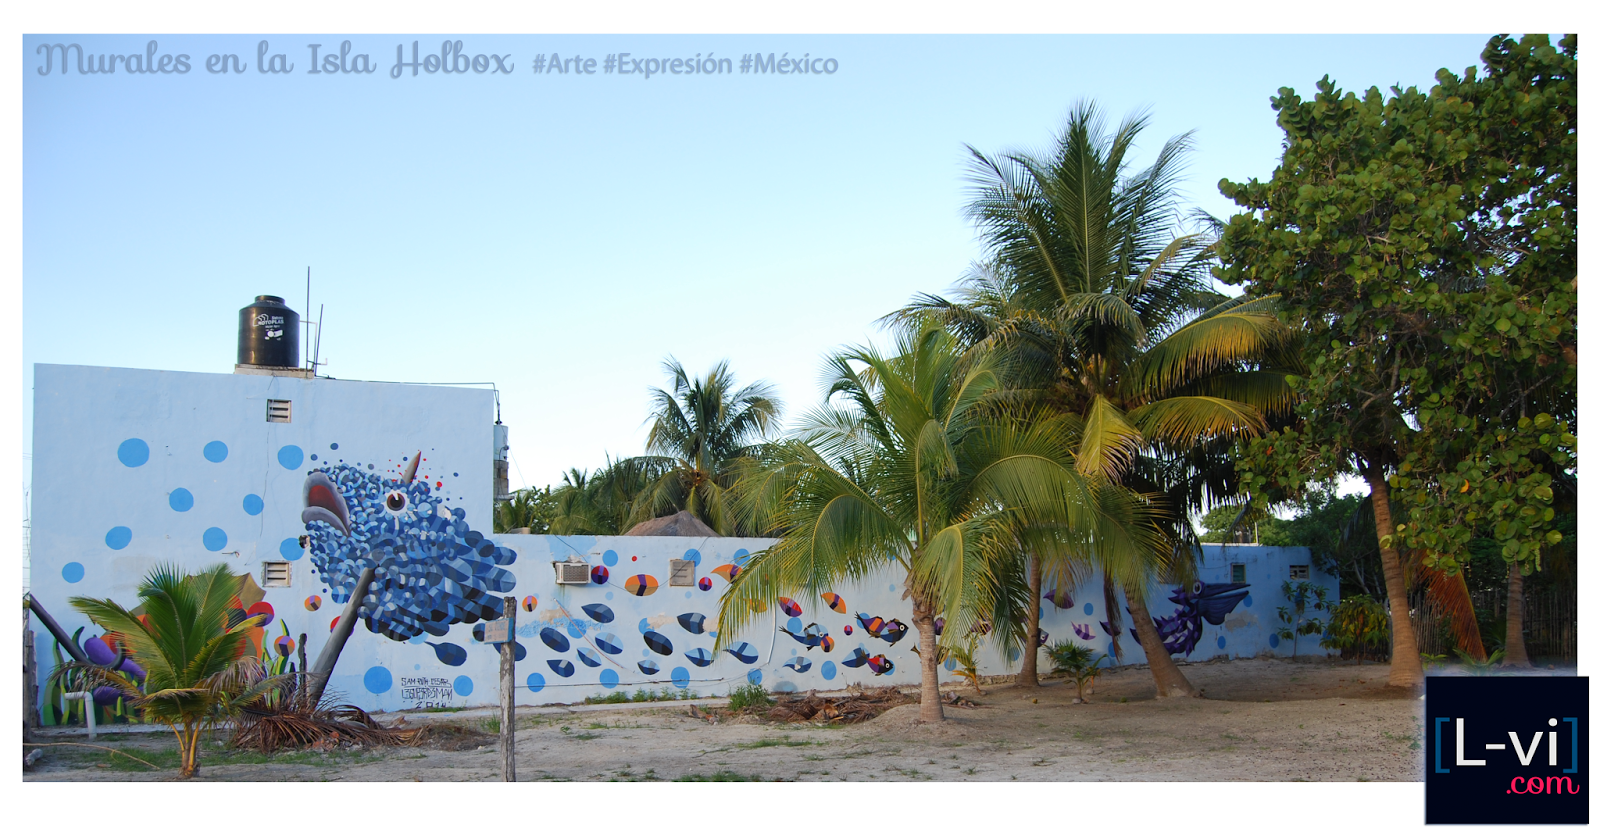 Holbox Island: Mural Paintings by LuceBuona©  L-vi.com